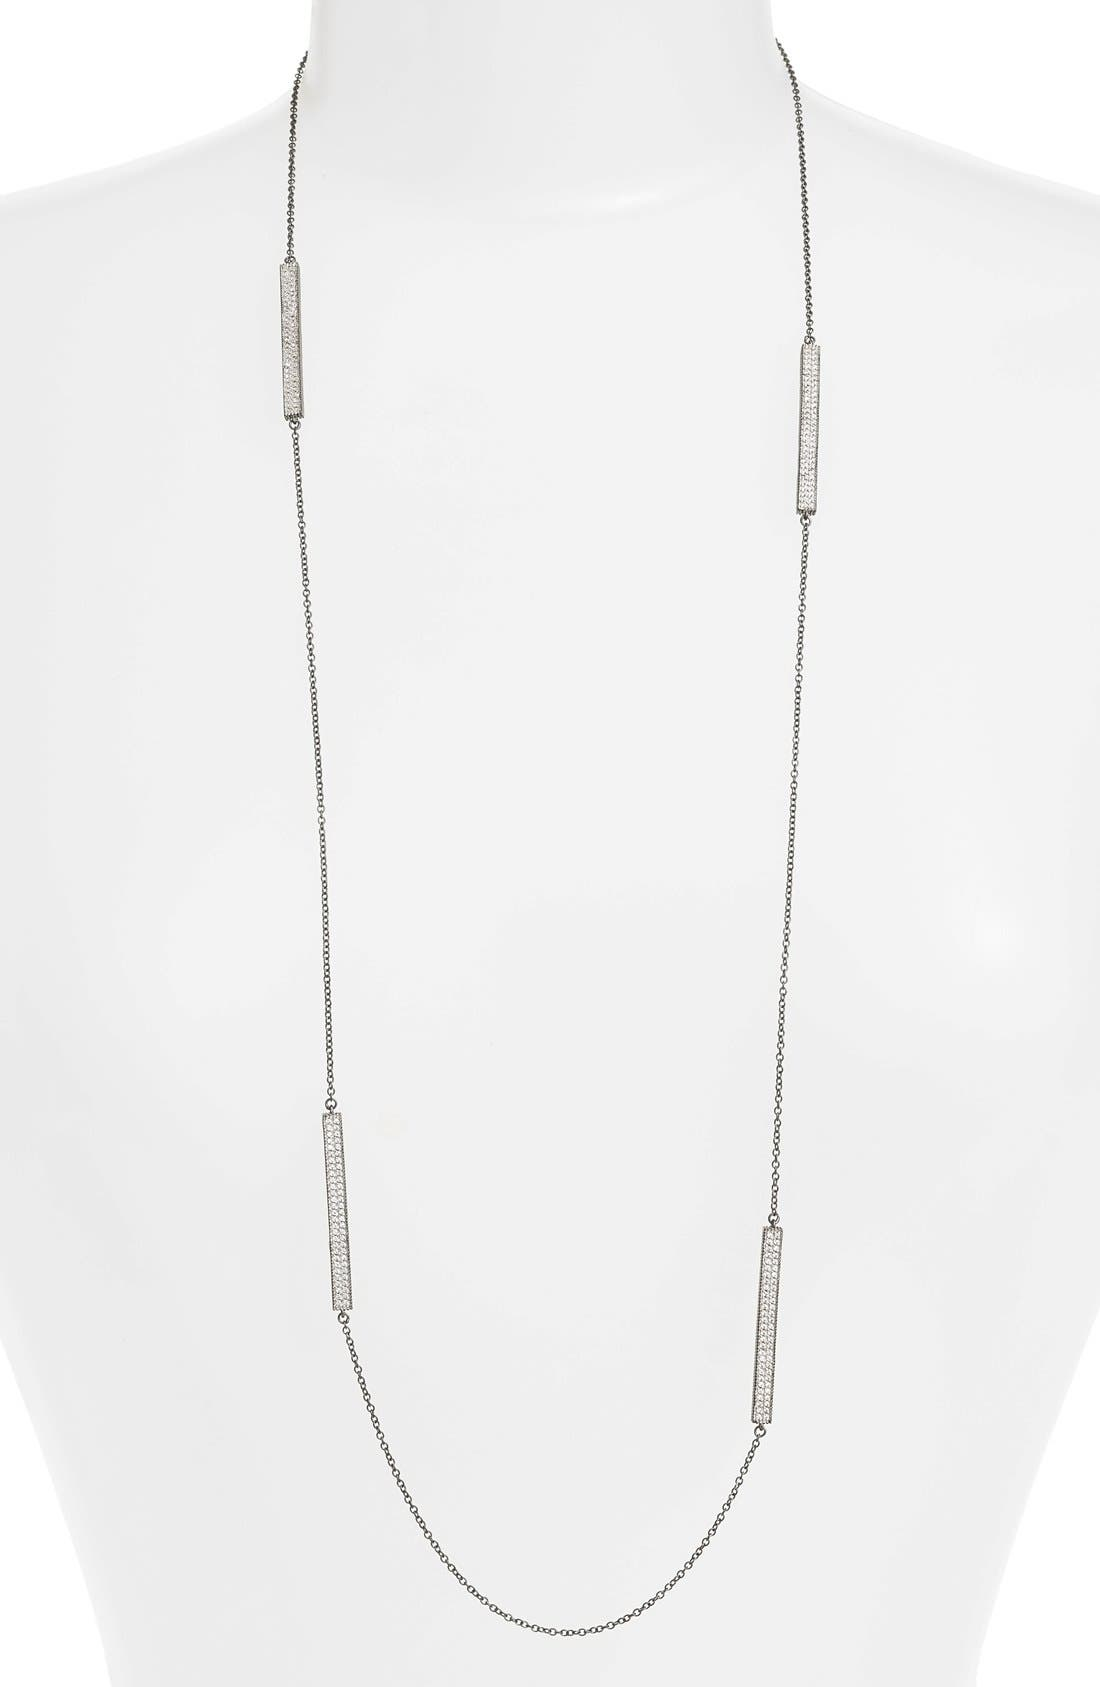 Contemporary Deco Station Necklace,                             Main thumbnail 1, color,                             SILVER/ GUNMETAL